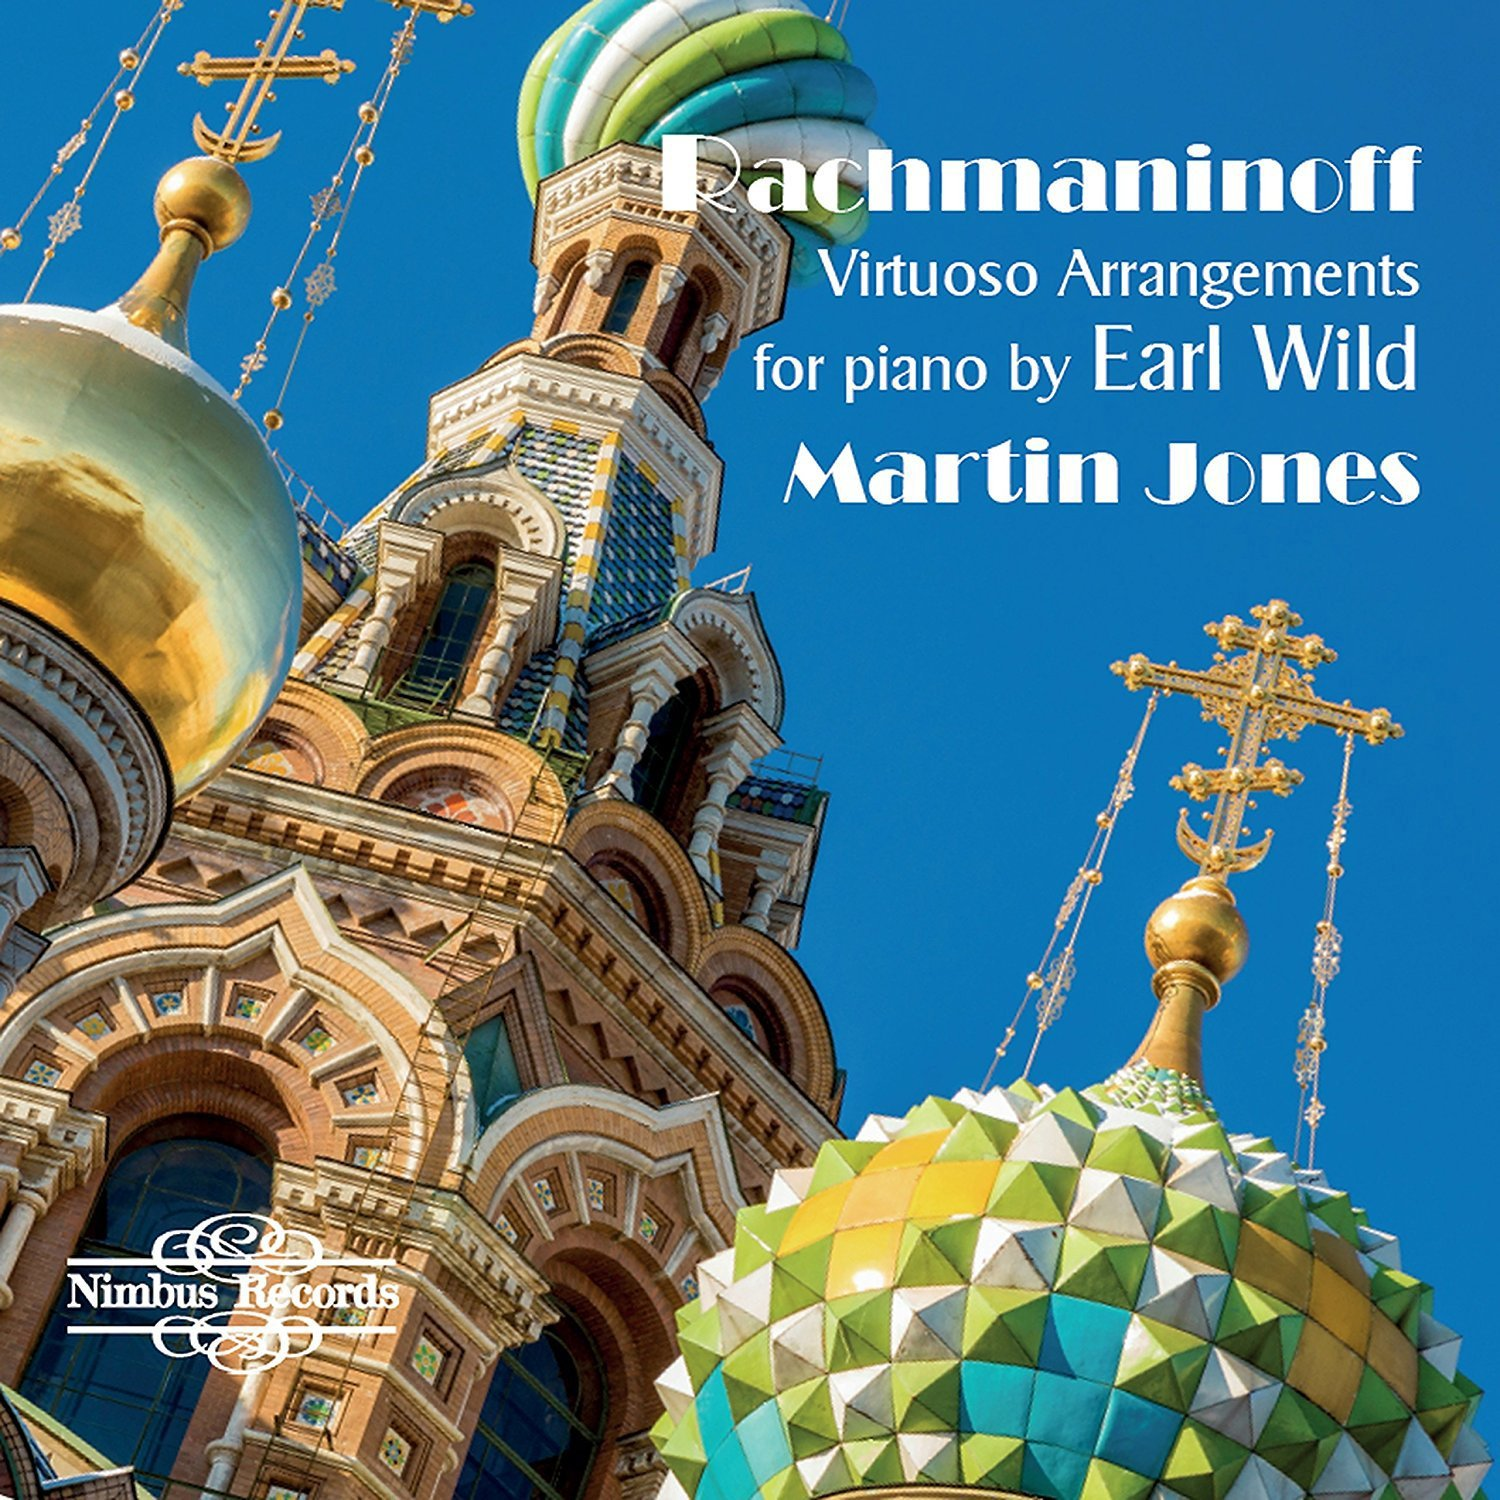 Rachmaninoff: Virtuoso Arrangements for piano by E